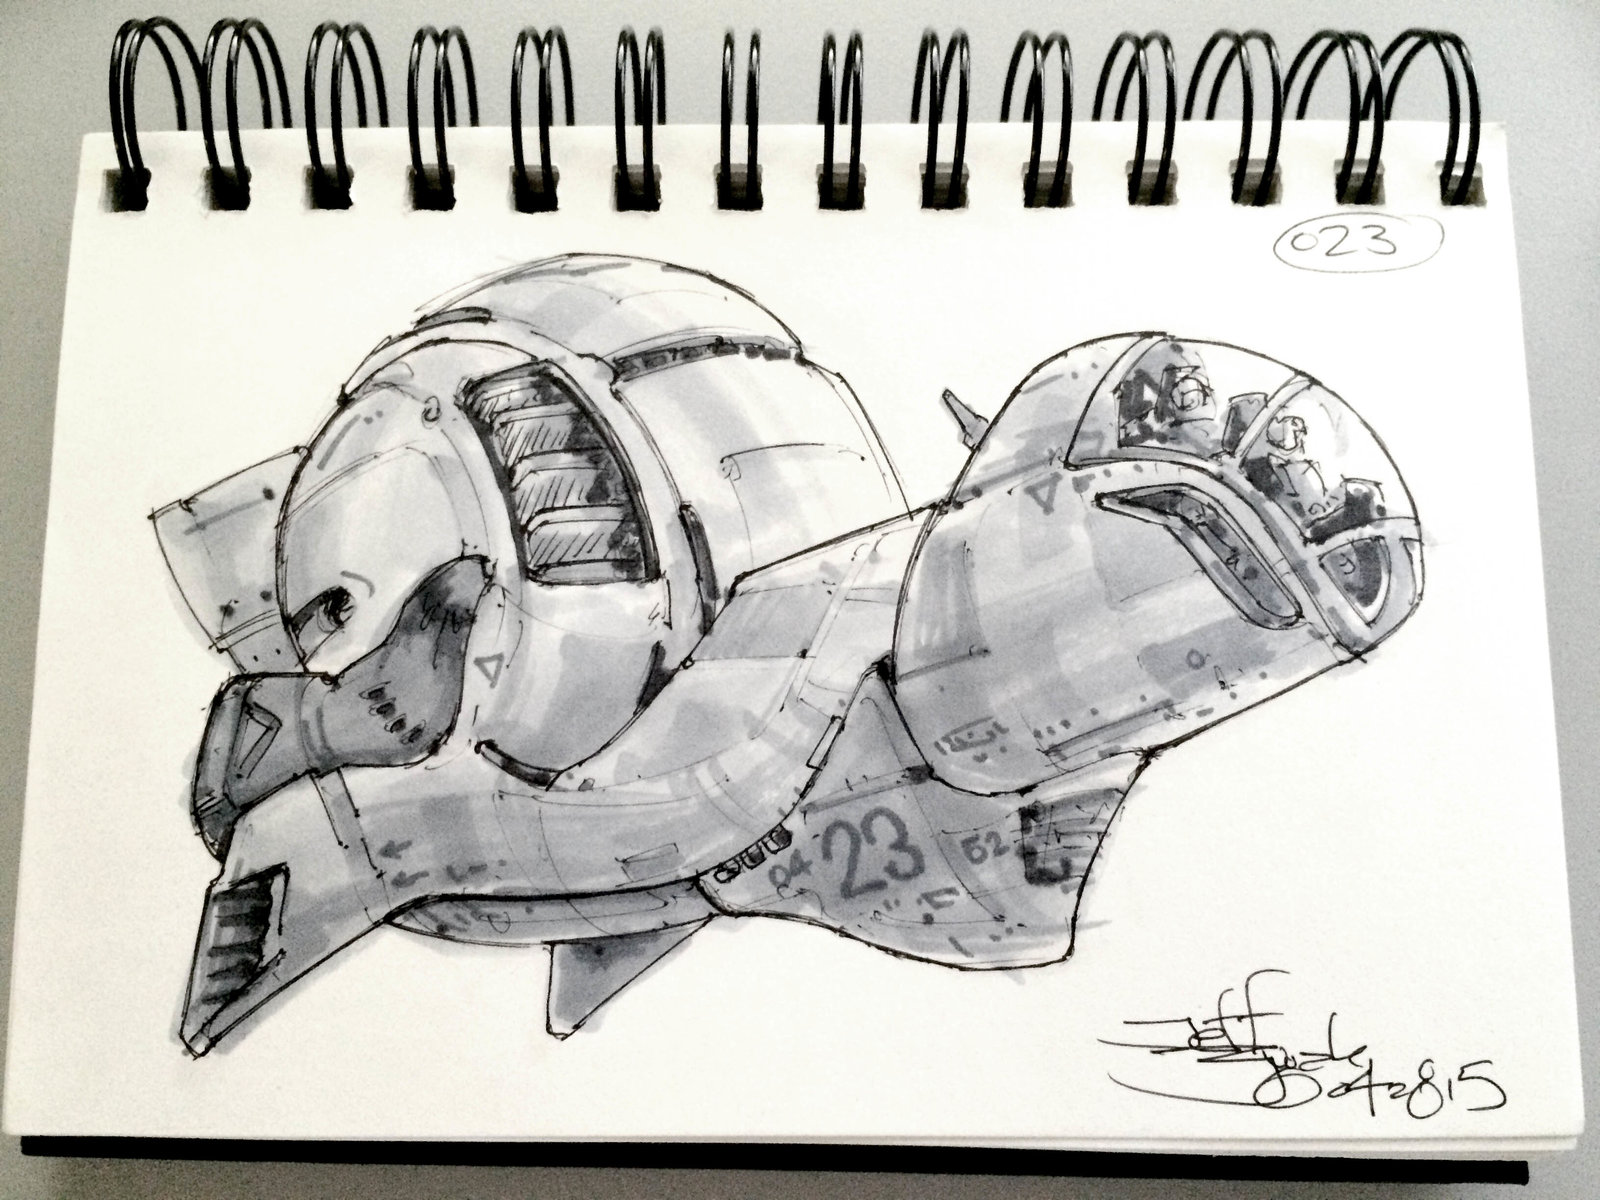 SpaceshipADay 023